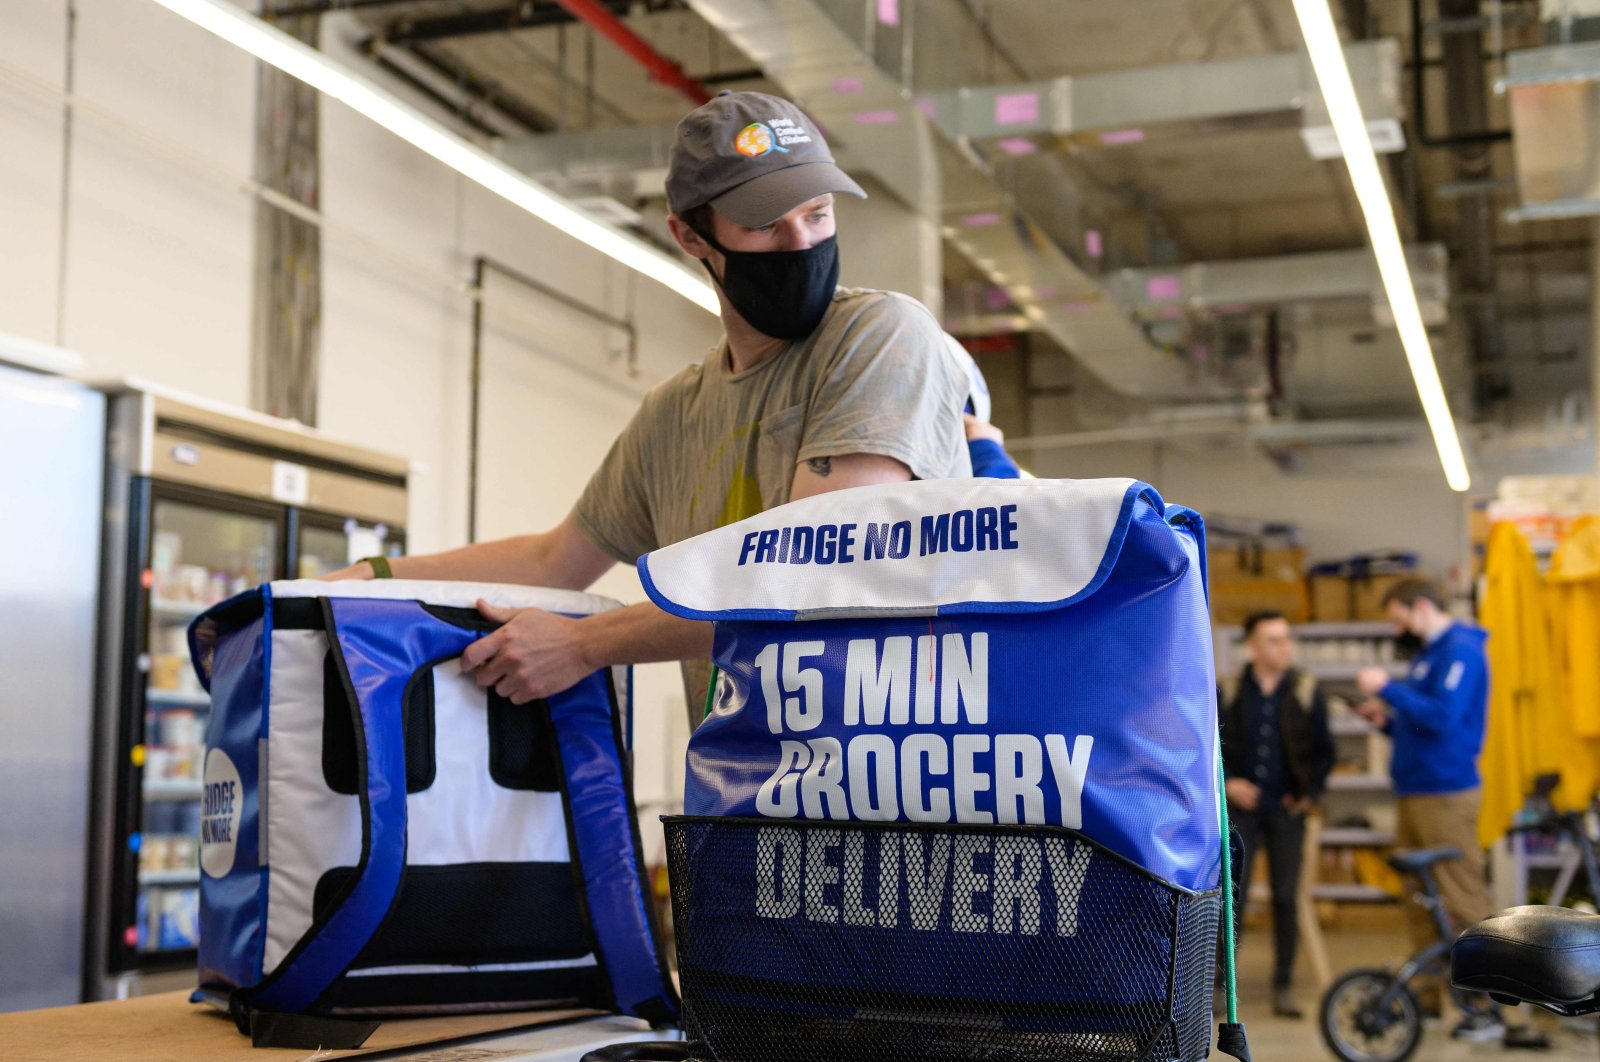 An employee prepares grocery delivery bags from 'Fridge No More' in the Brooklyn borough of New York City, U.S., March 31, 2021. (AFP Photo)